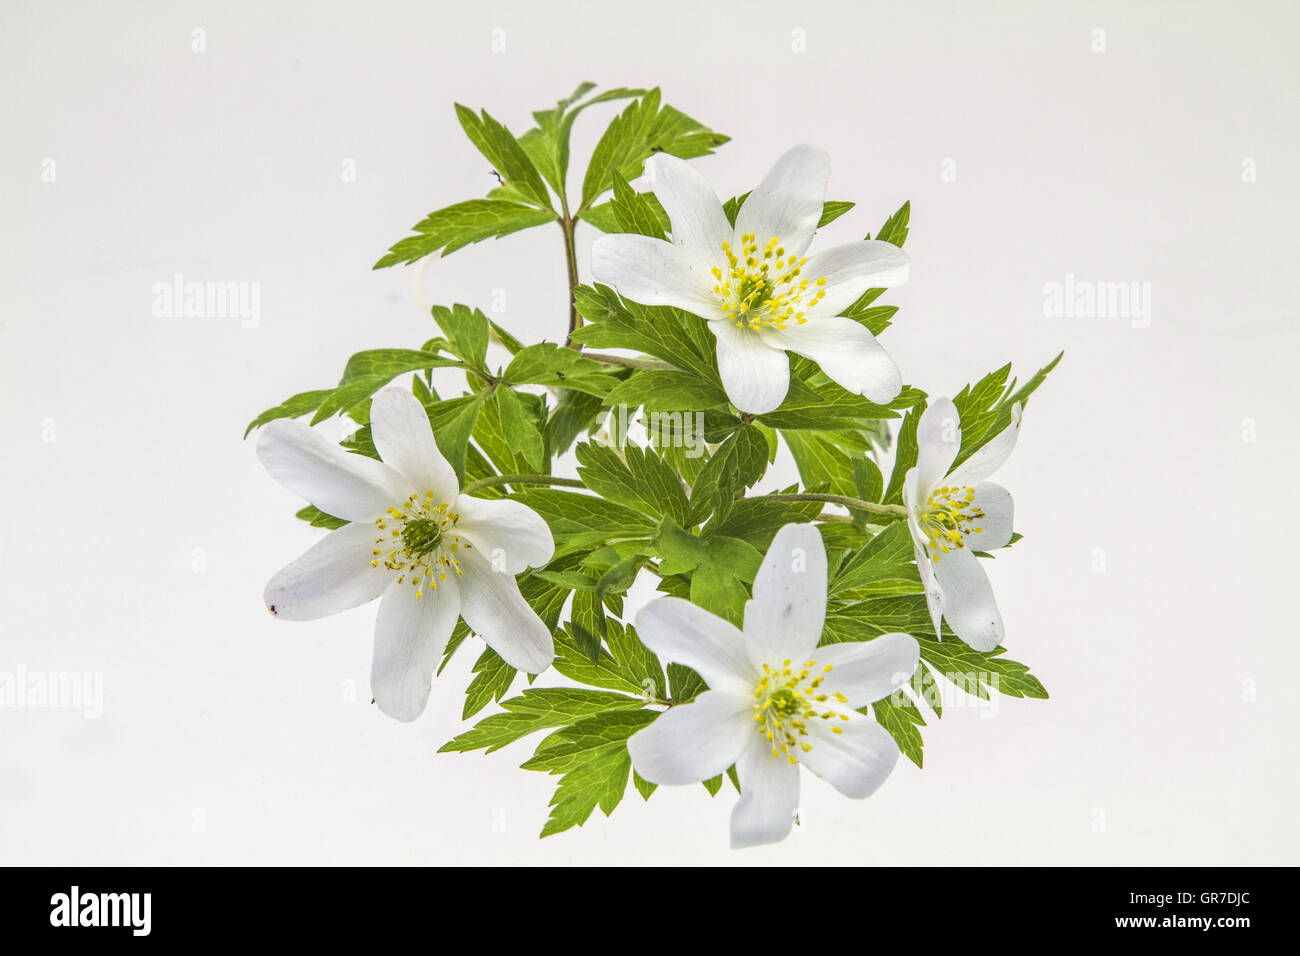 Wood Anemone Blossoms And Leaves Against A White Background - Stock Image